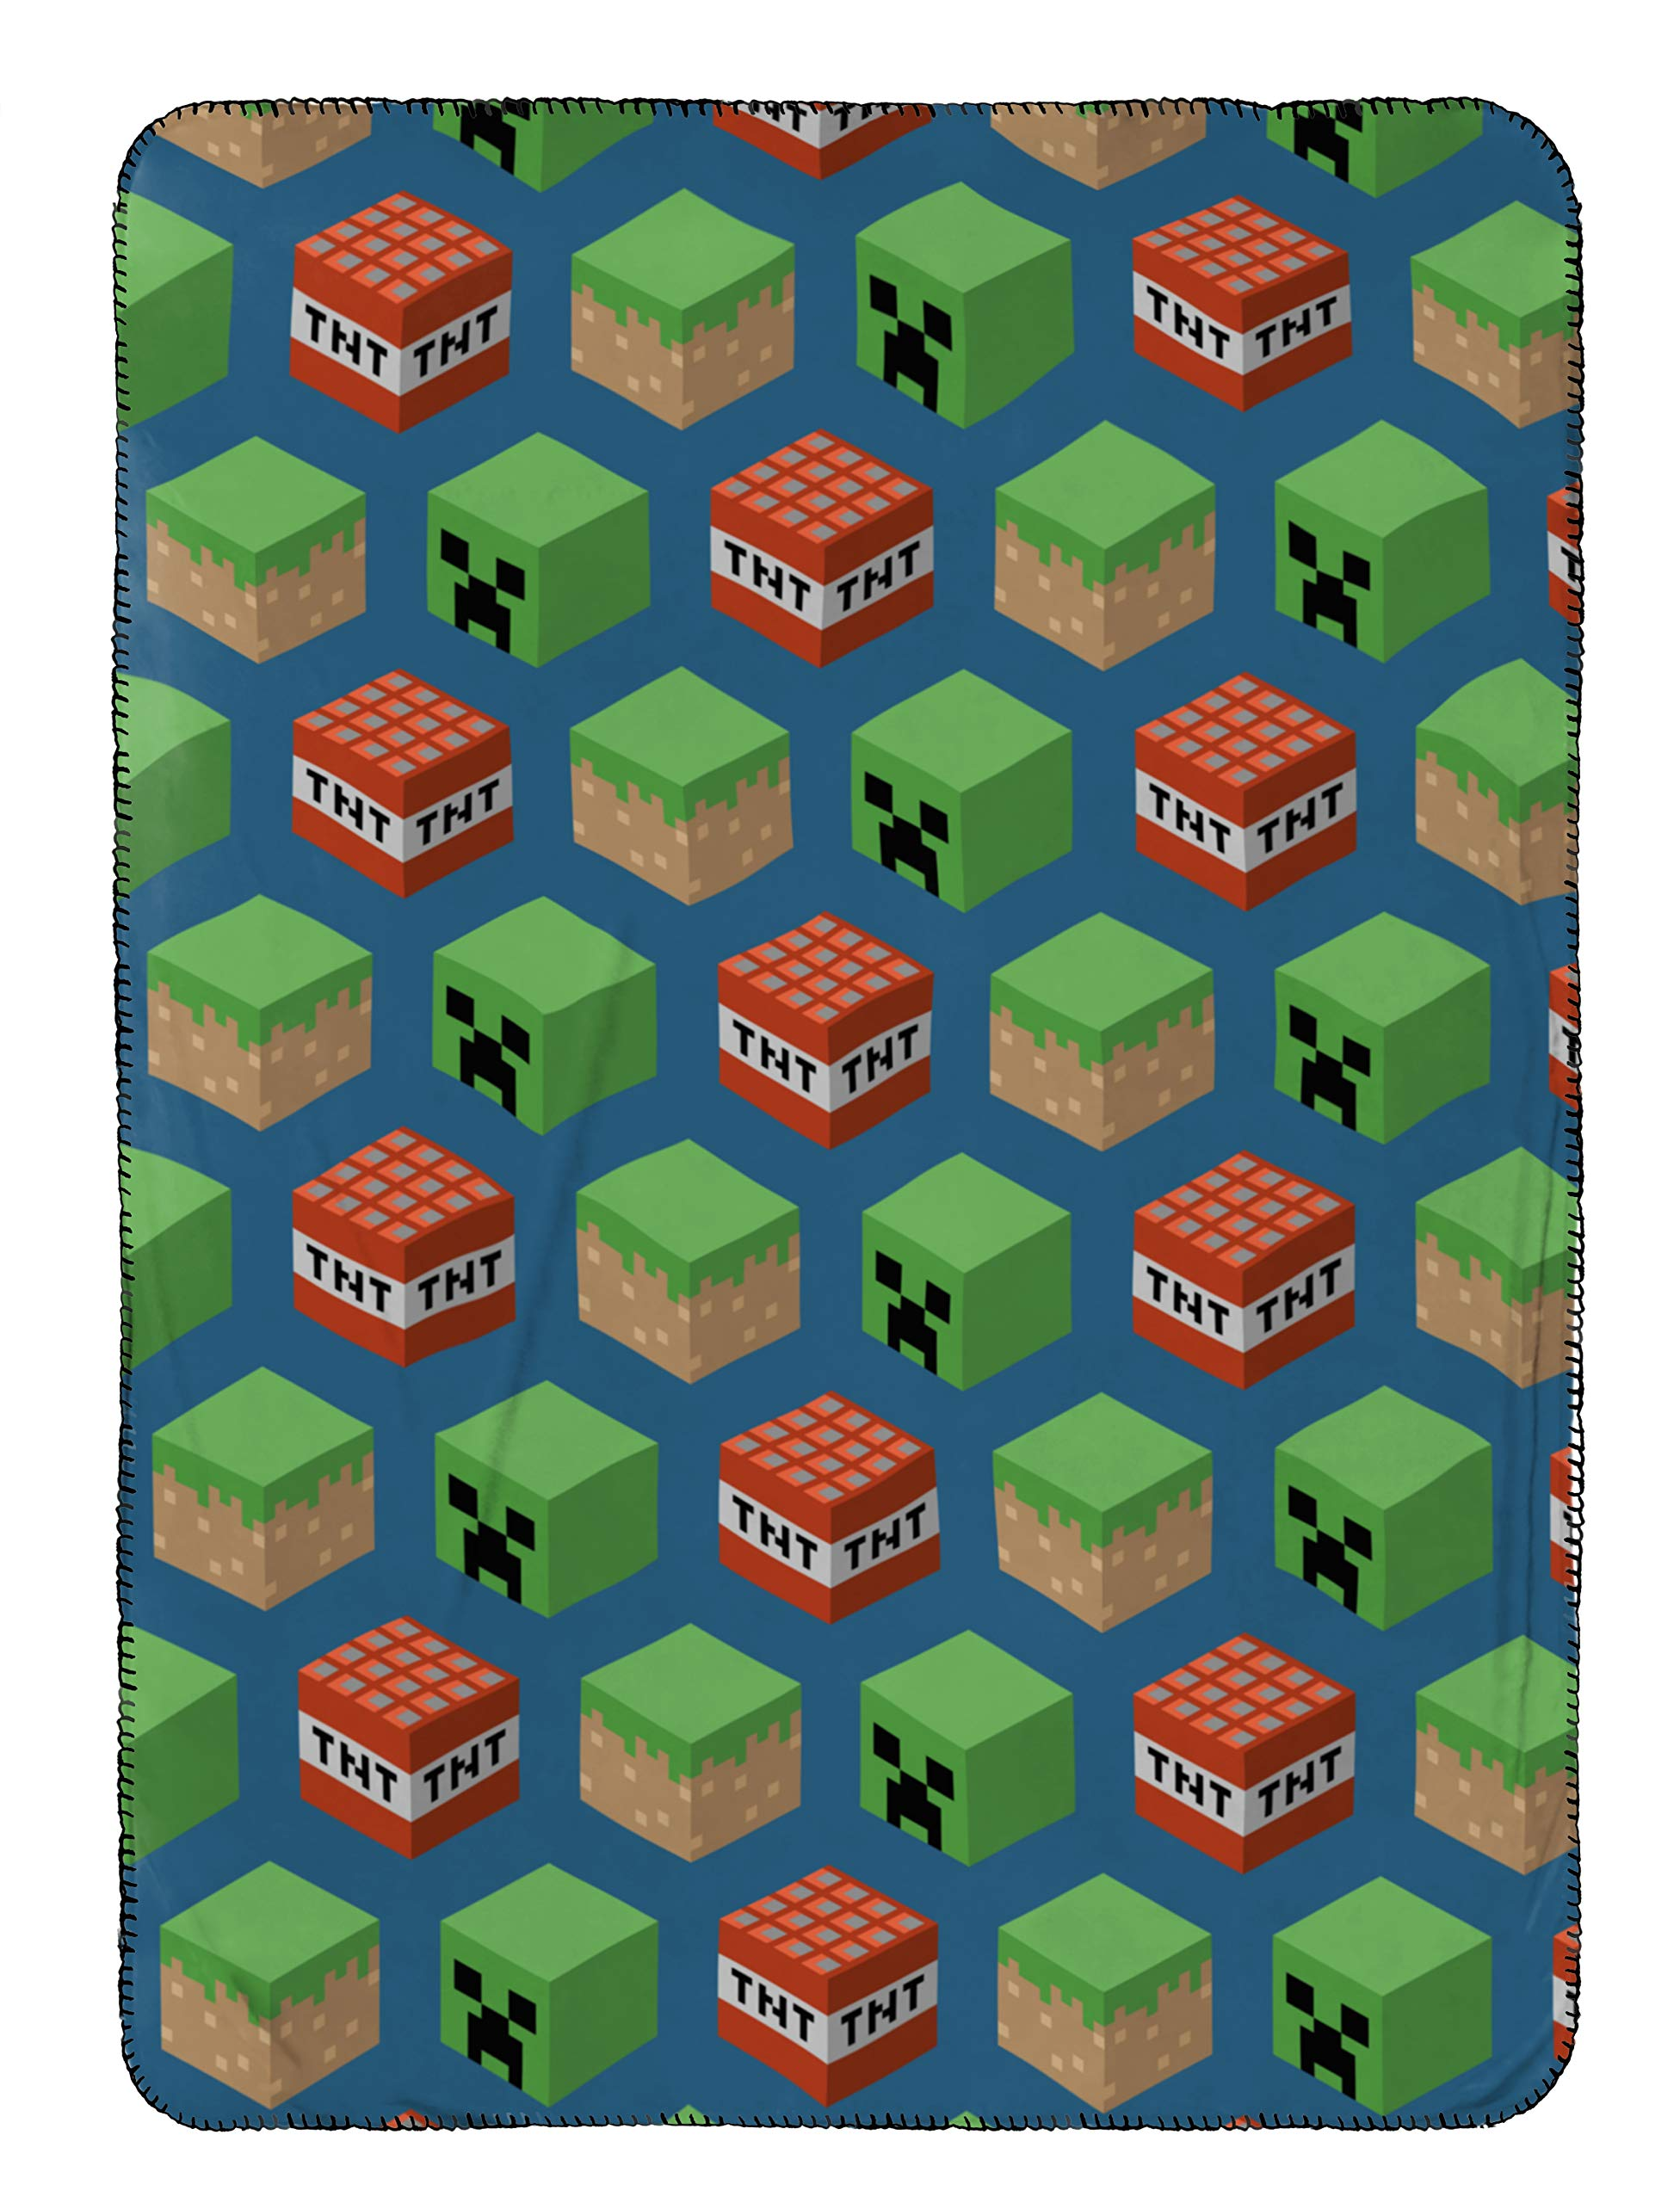 Jay Franco Mojang Minecraft Travel Blanket - Measures 40 x 50 inches, Kids Bedding Features Mineral Blocks - Fade Resistant Super Soft Fleece - (Official Mojang Product)